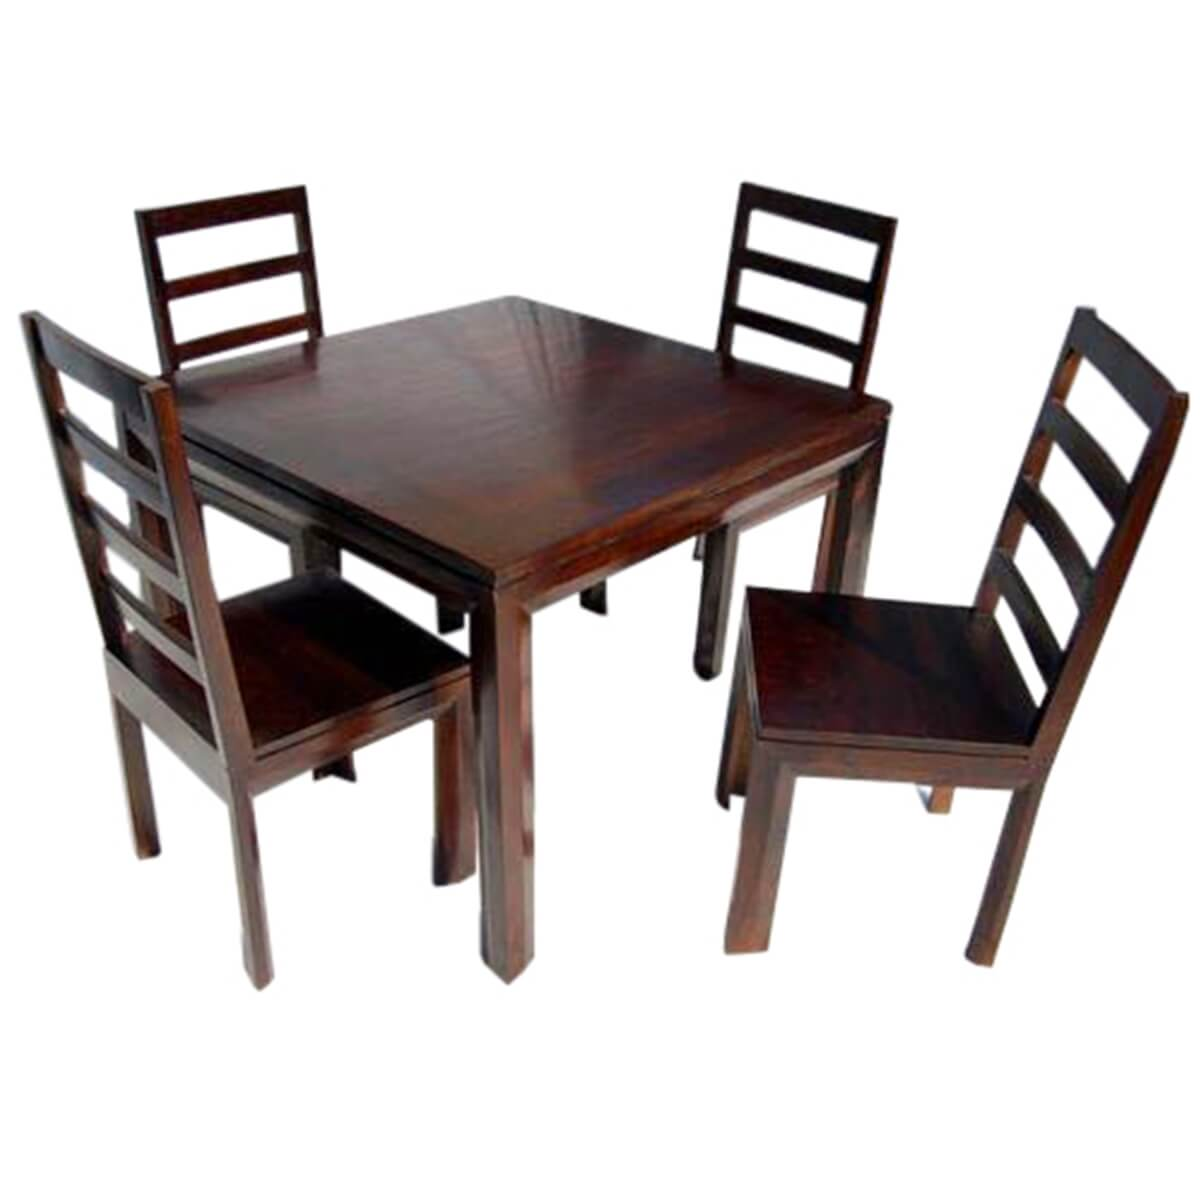 Solid Wood Kitchen Tables: Solid Wood Transitional Dining Table And Chairs Set